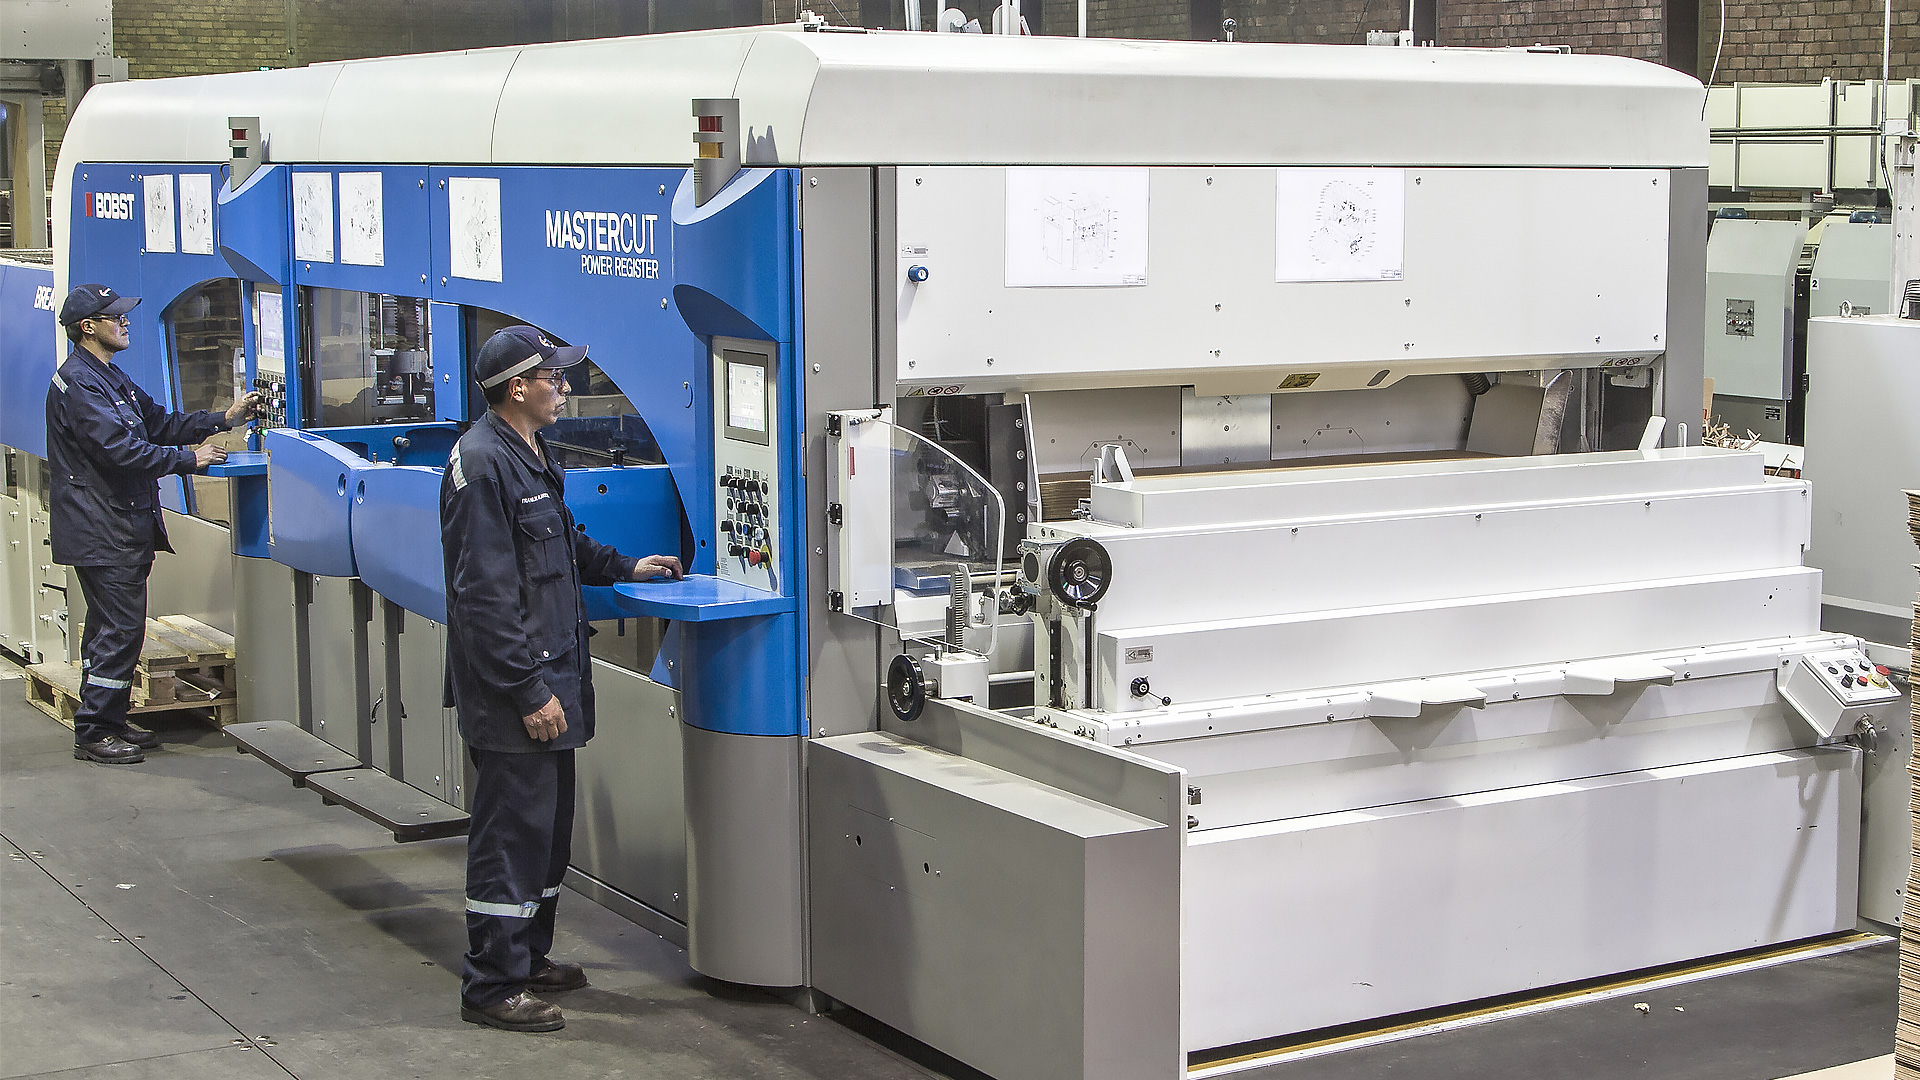 BOBST Equipment Has Been Used By La Papelera For Some Years Flexo Printing Plus Flatbed Die Cutting With Two SPO Machines